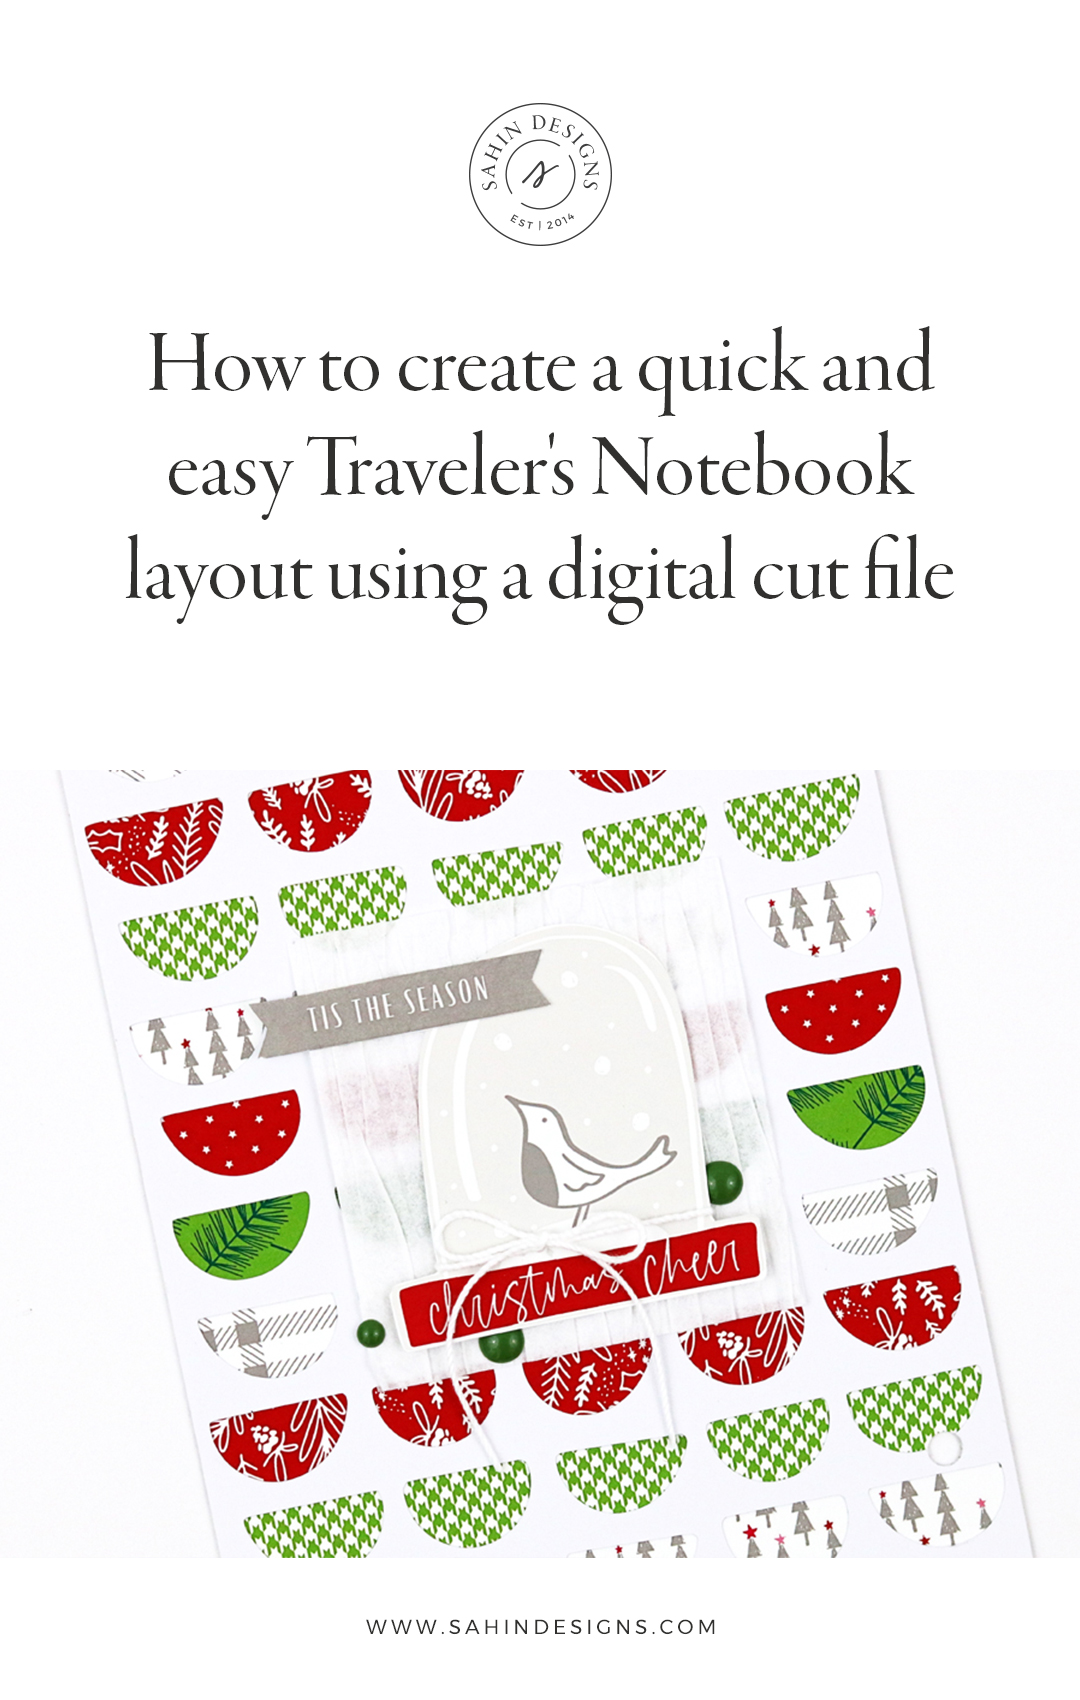 How to create quick and easy traveler's notebook layout with cut file - Sahin Designs